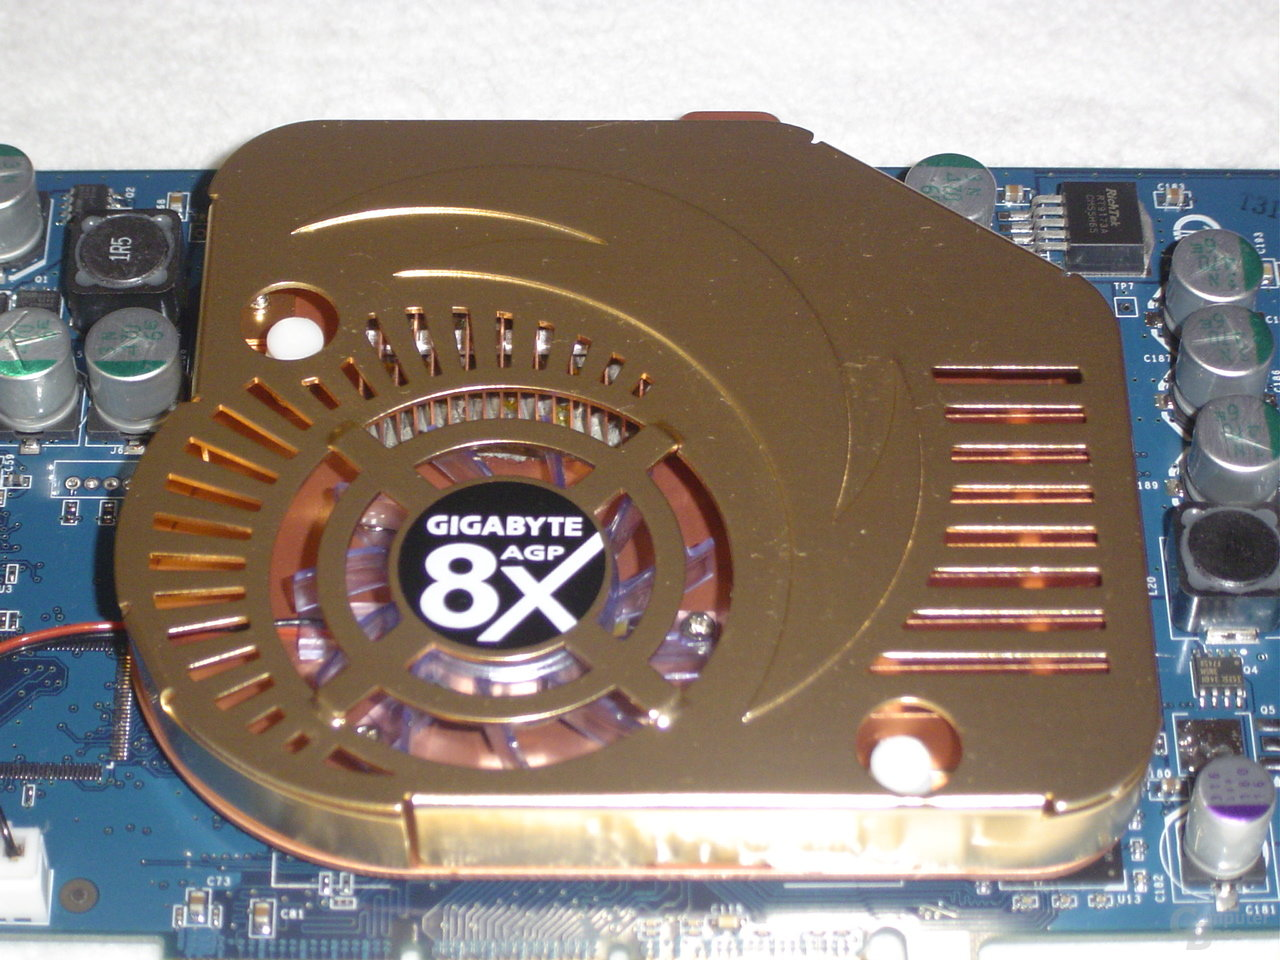 Gigabyte GeForce FX 5900 XT